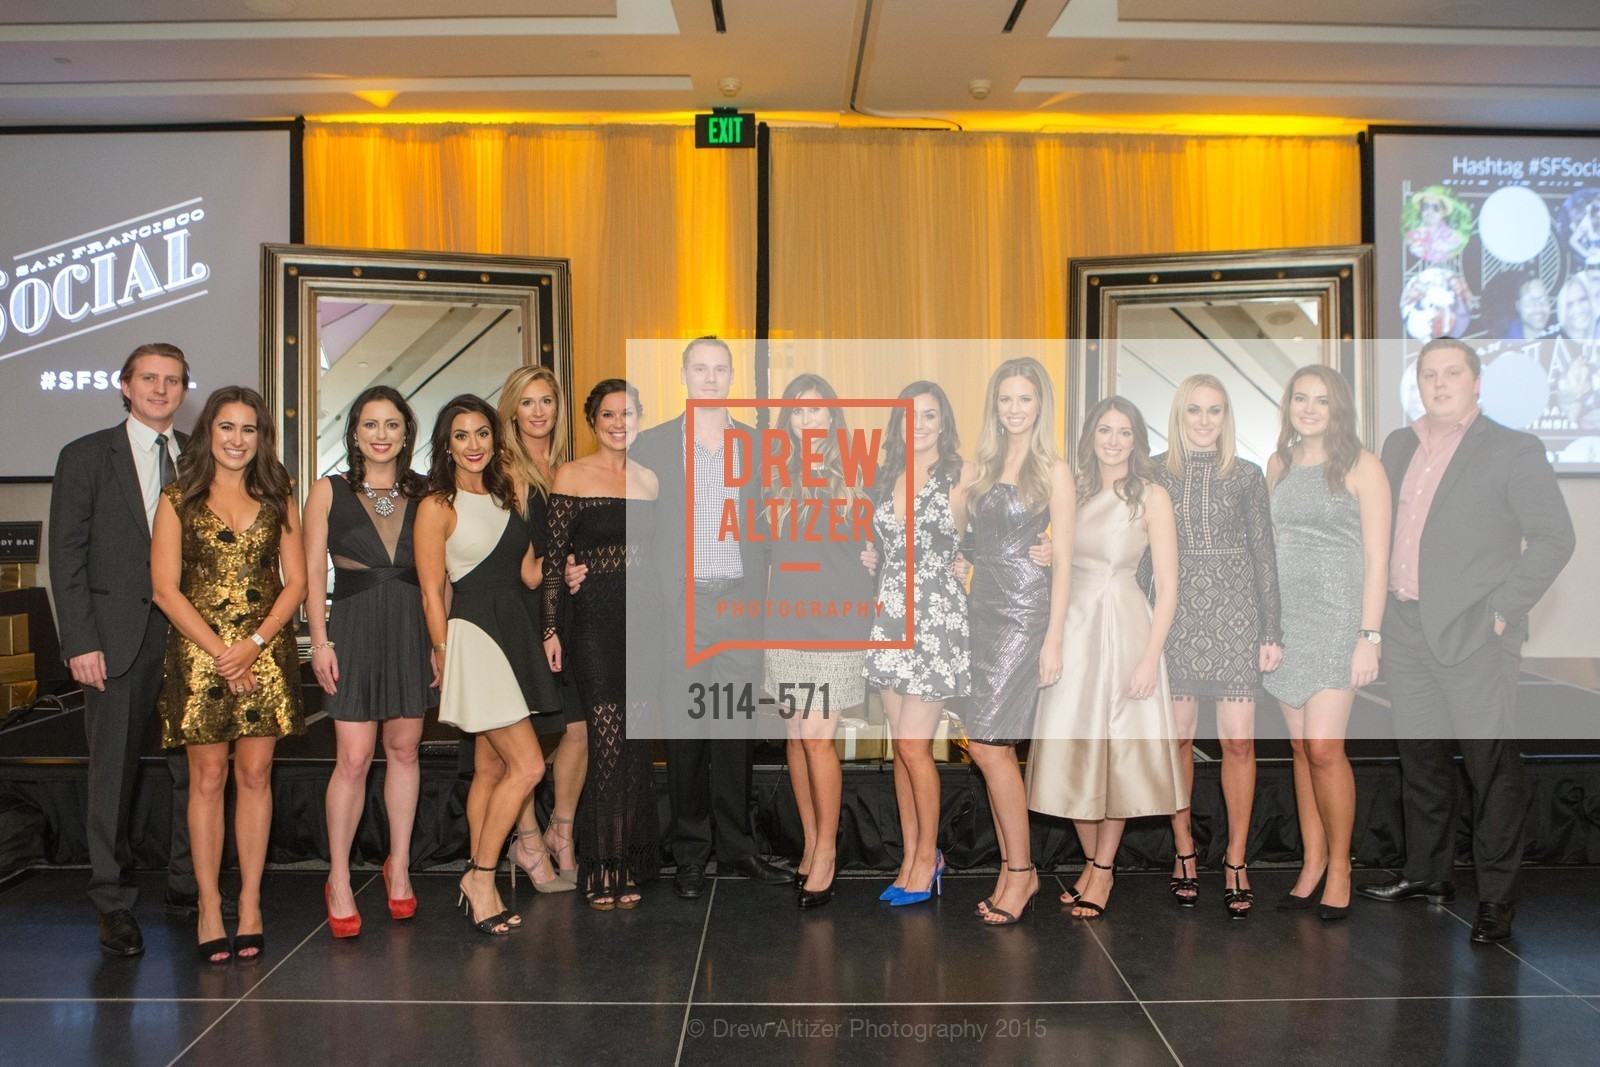 Ben Anderson, Morgan Moore, Amanda Coffee, Danielle Leeke, Alissa Yee, Hannah Schmunk, Anderson Pugash, Kelly Boynton, Kaitlyn Landers, Erin Victor, Madison Ginnett, Meredith May, Allie Zimnoch, Jack Herr, The 10th Annual San Francisco Social, W Hotel. 181 3rd St, November 21st, 2015,Drew Altizer, Drew Altizer Photography, full-service agency, private events, San Francisco photographer, photographer california